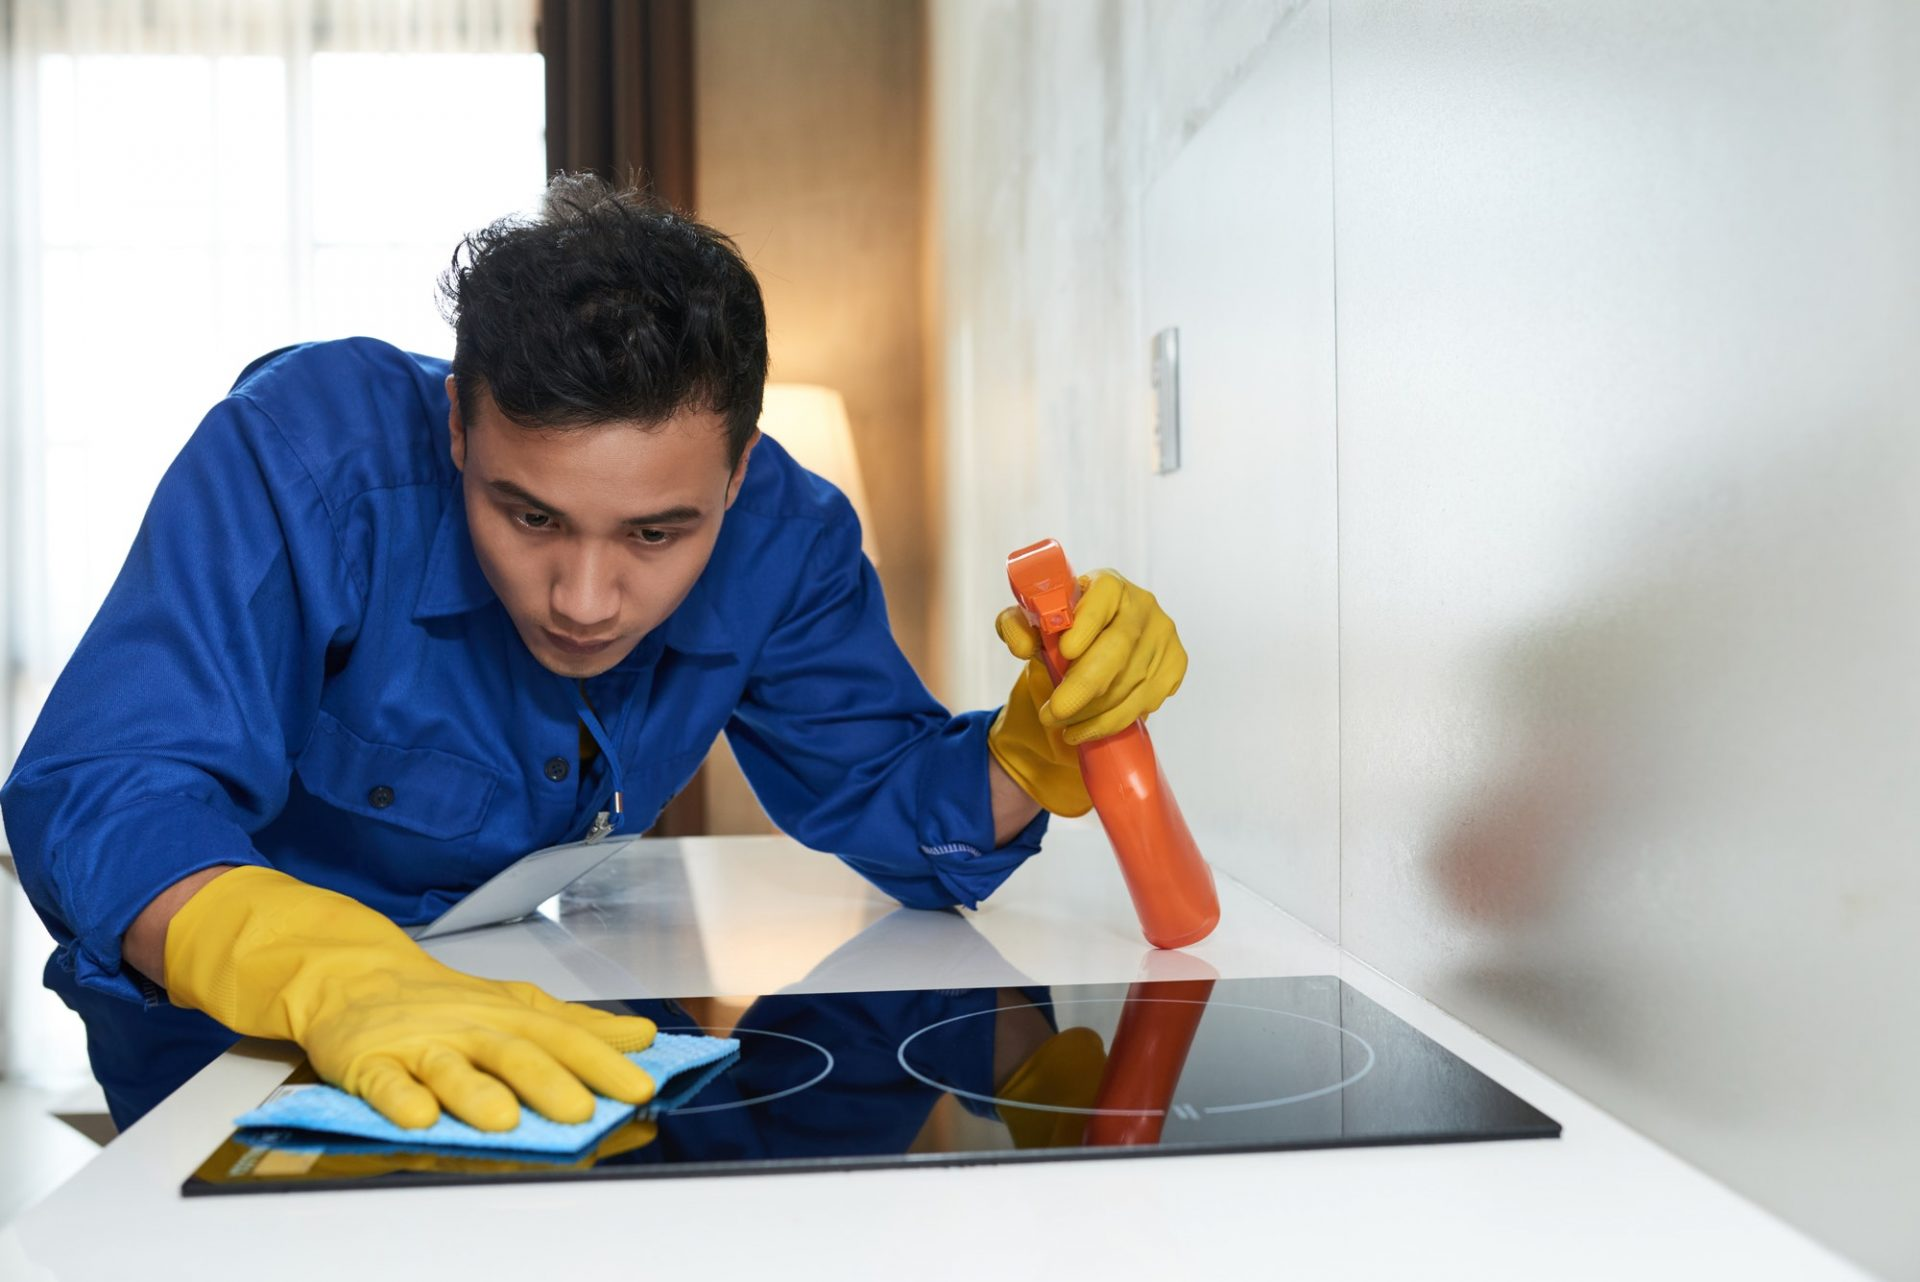 Worker cleaning stove surface